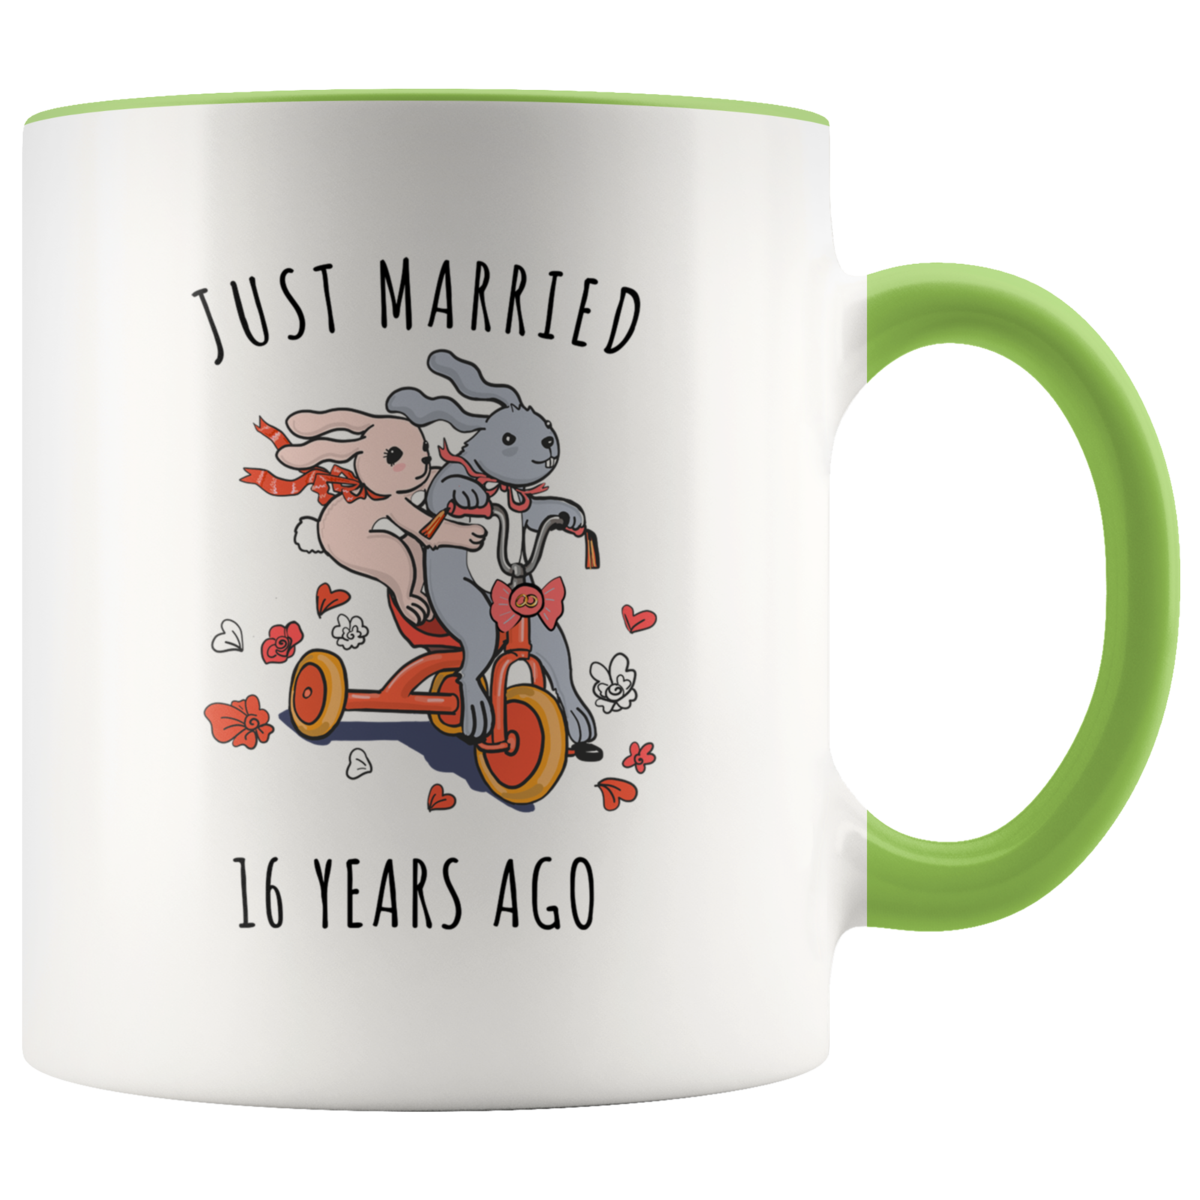 Just Married 16 Years Ago 16th Wedding Anniversary Gift